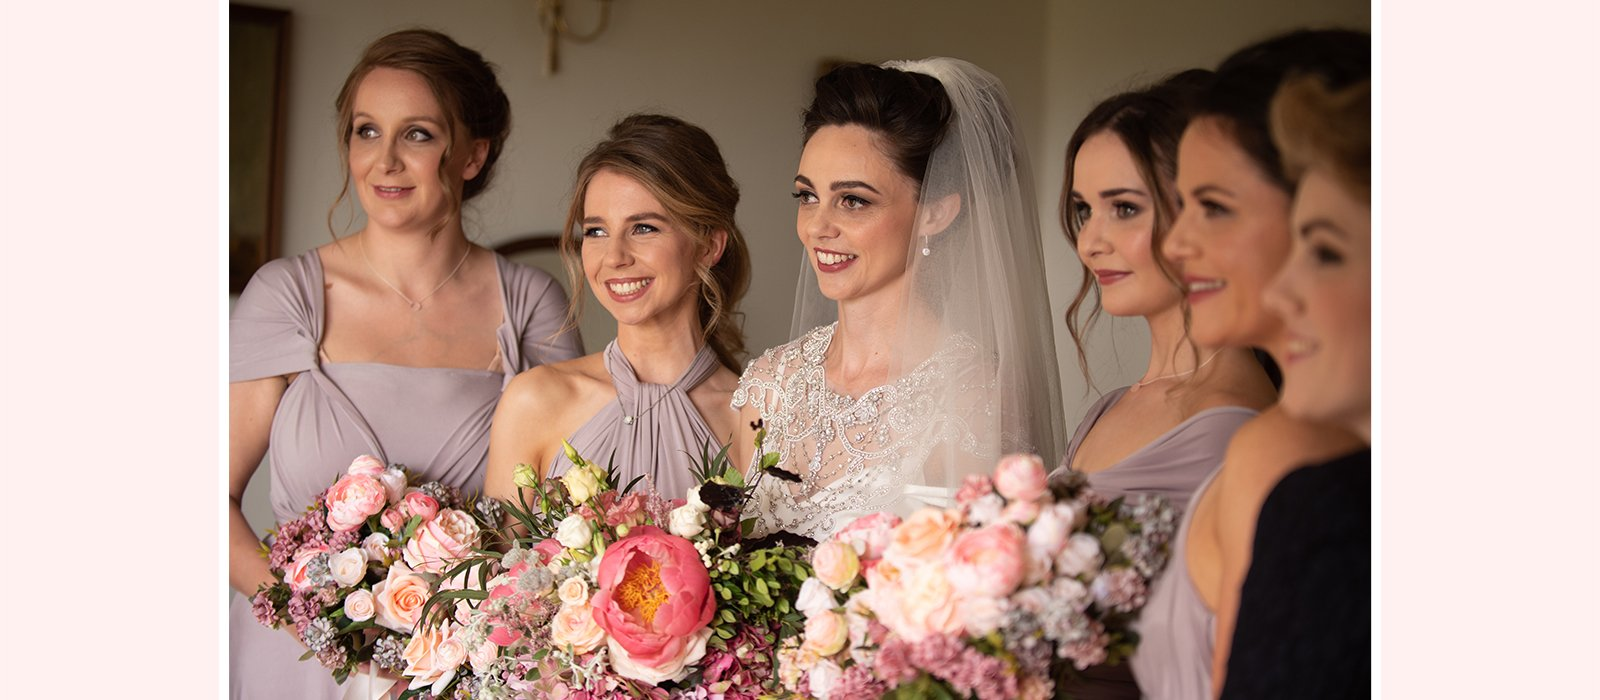 https://www.clarehogan.ie/wp-content/uploads/2019/03/clarehogan_slider_nessa.jpg